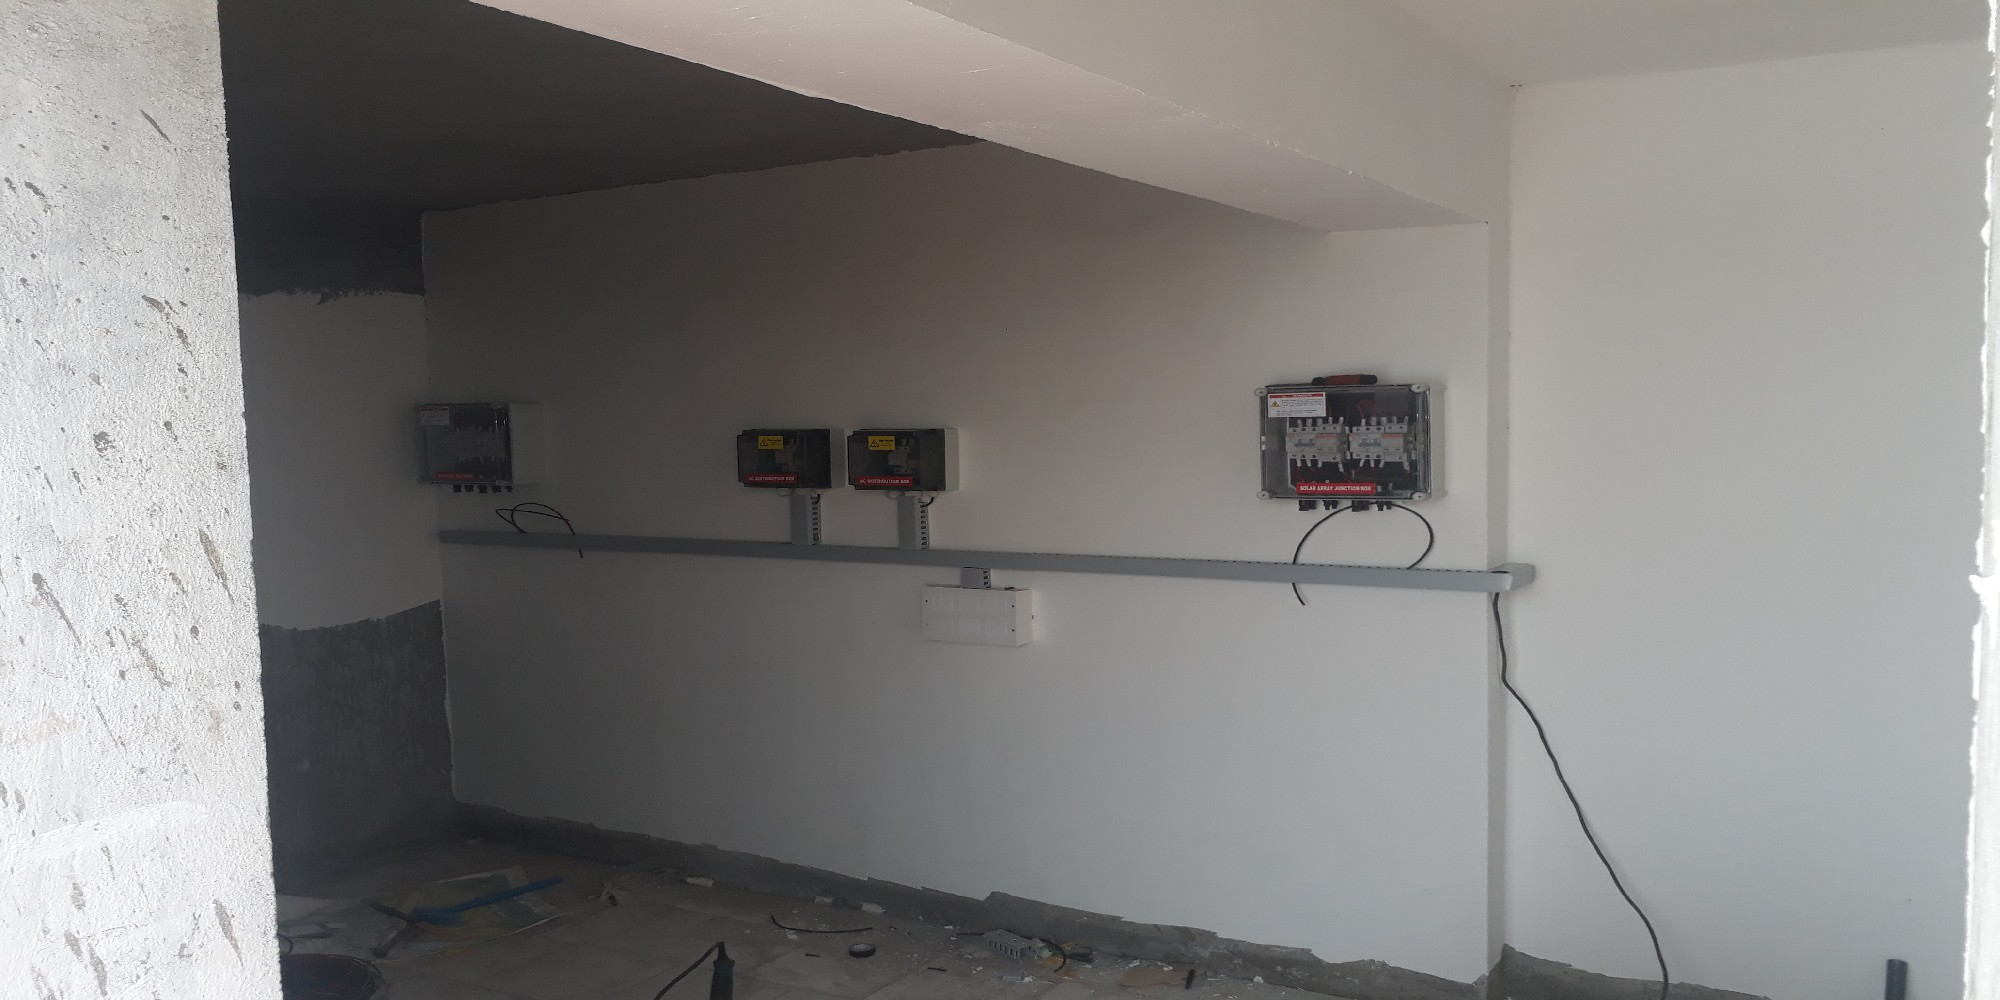 10kw On grid system (4)